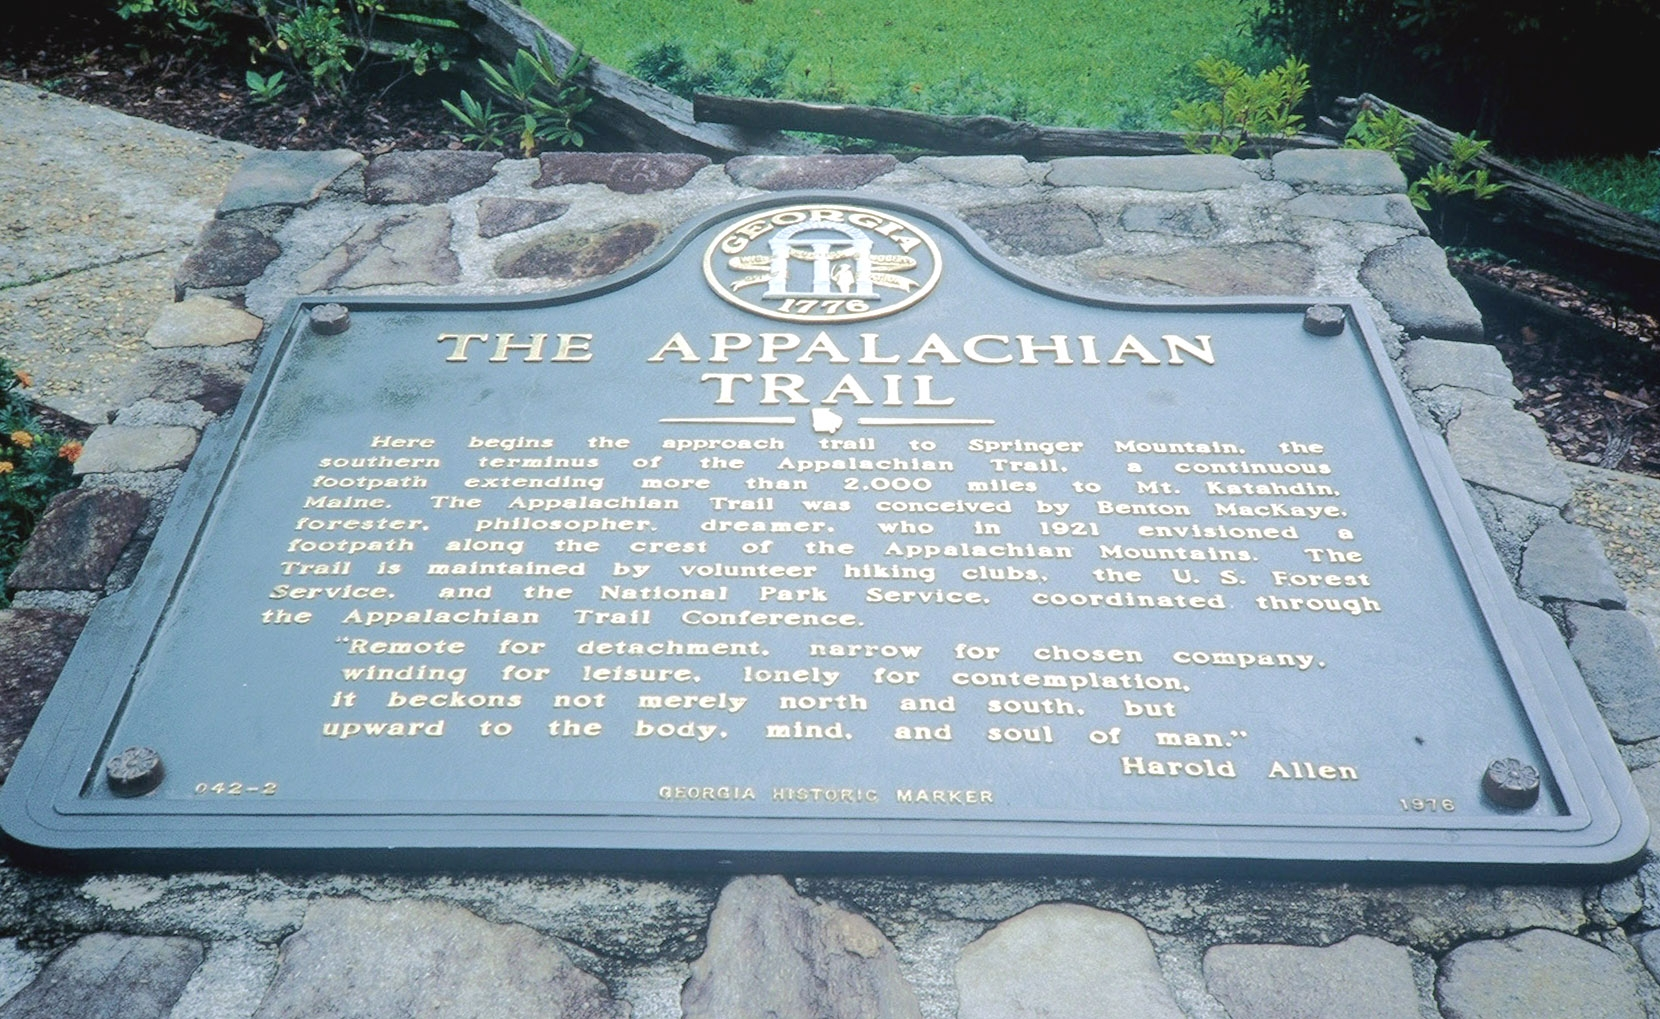 The Appalachian Trail Marker